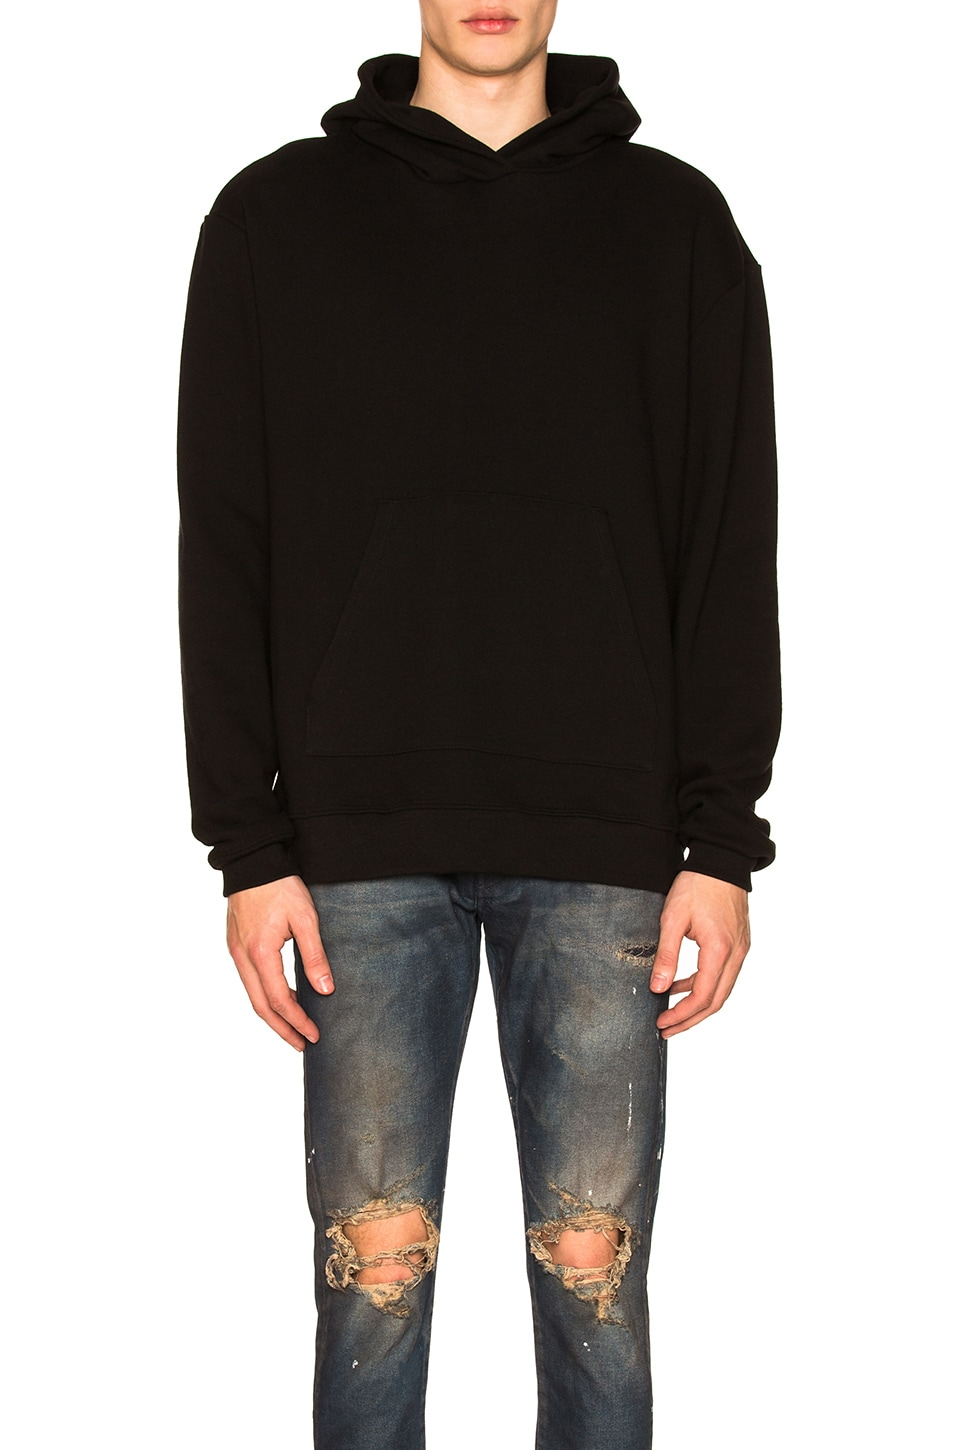 JOHN ELLIOTT Oversized Cropped Hoodie in Black